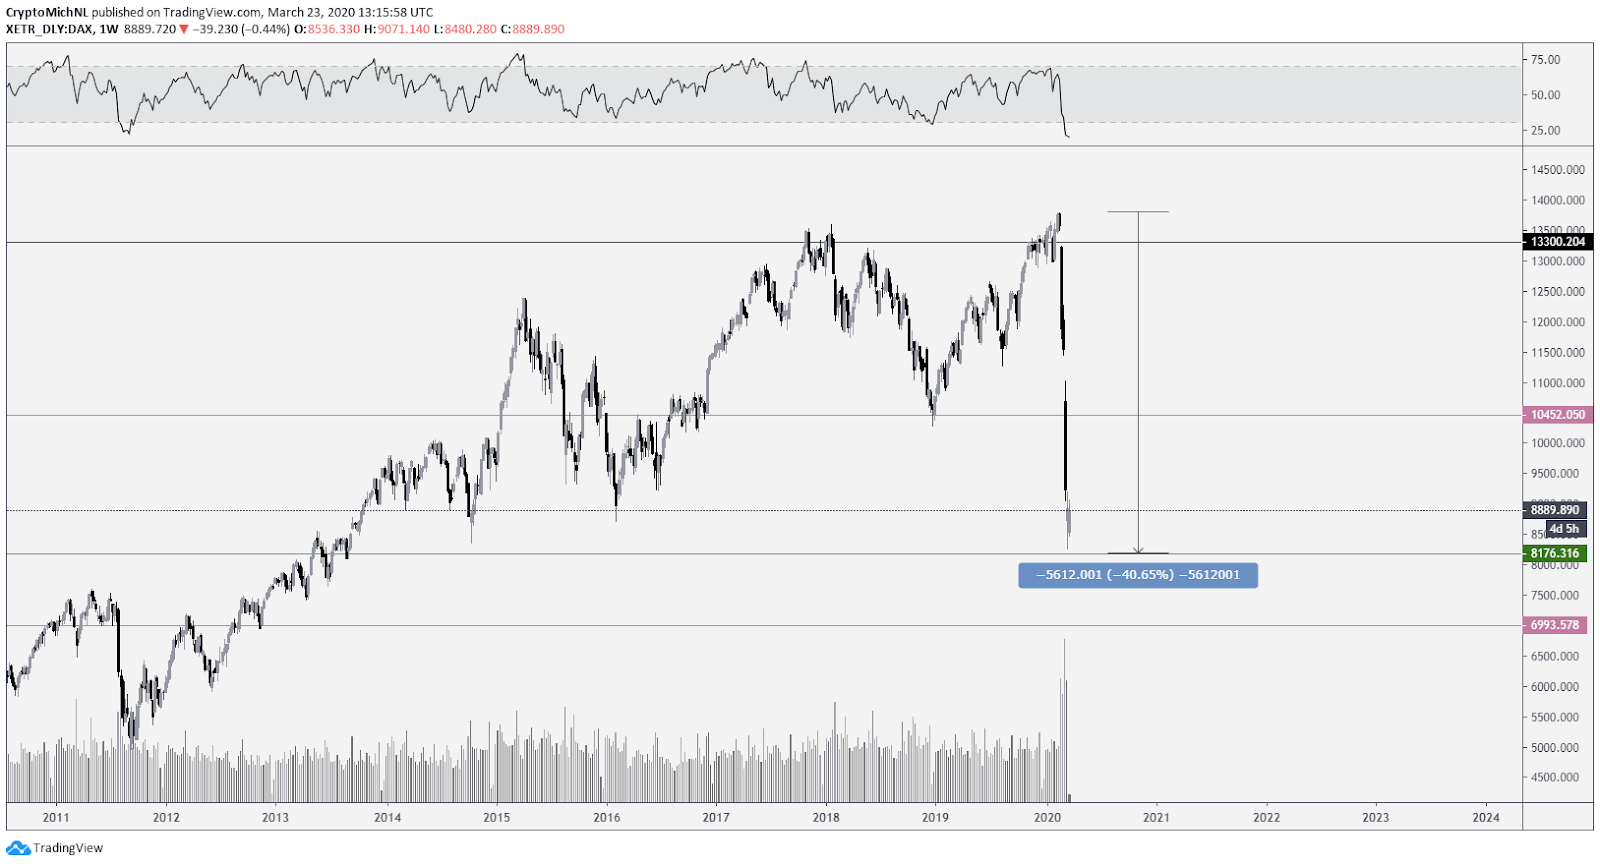 German stock index DAX 1-week chart. Source: TradingView